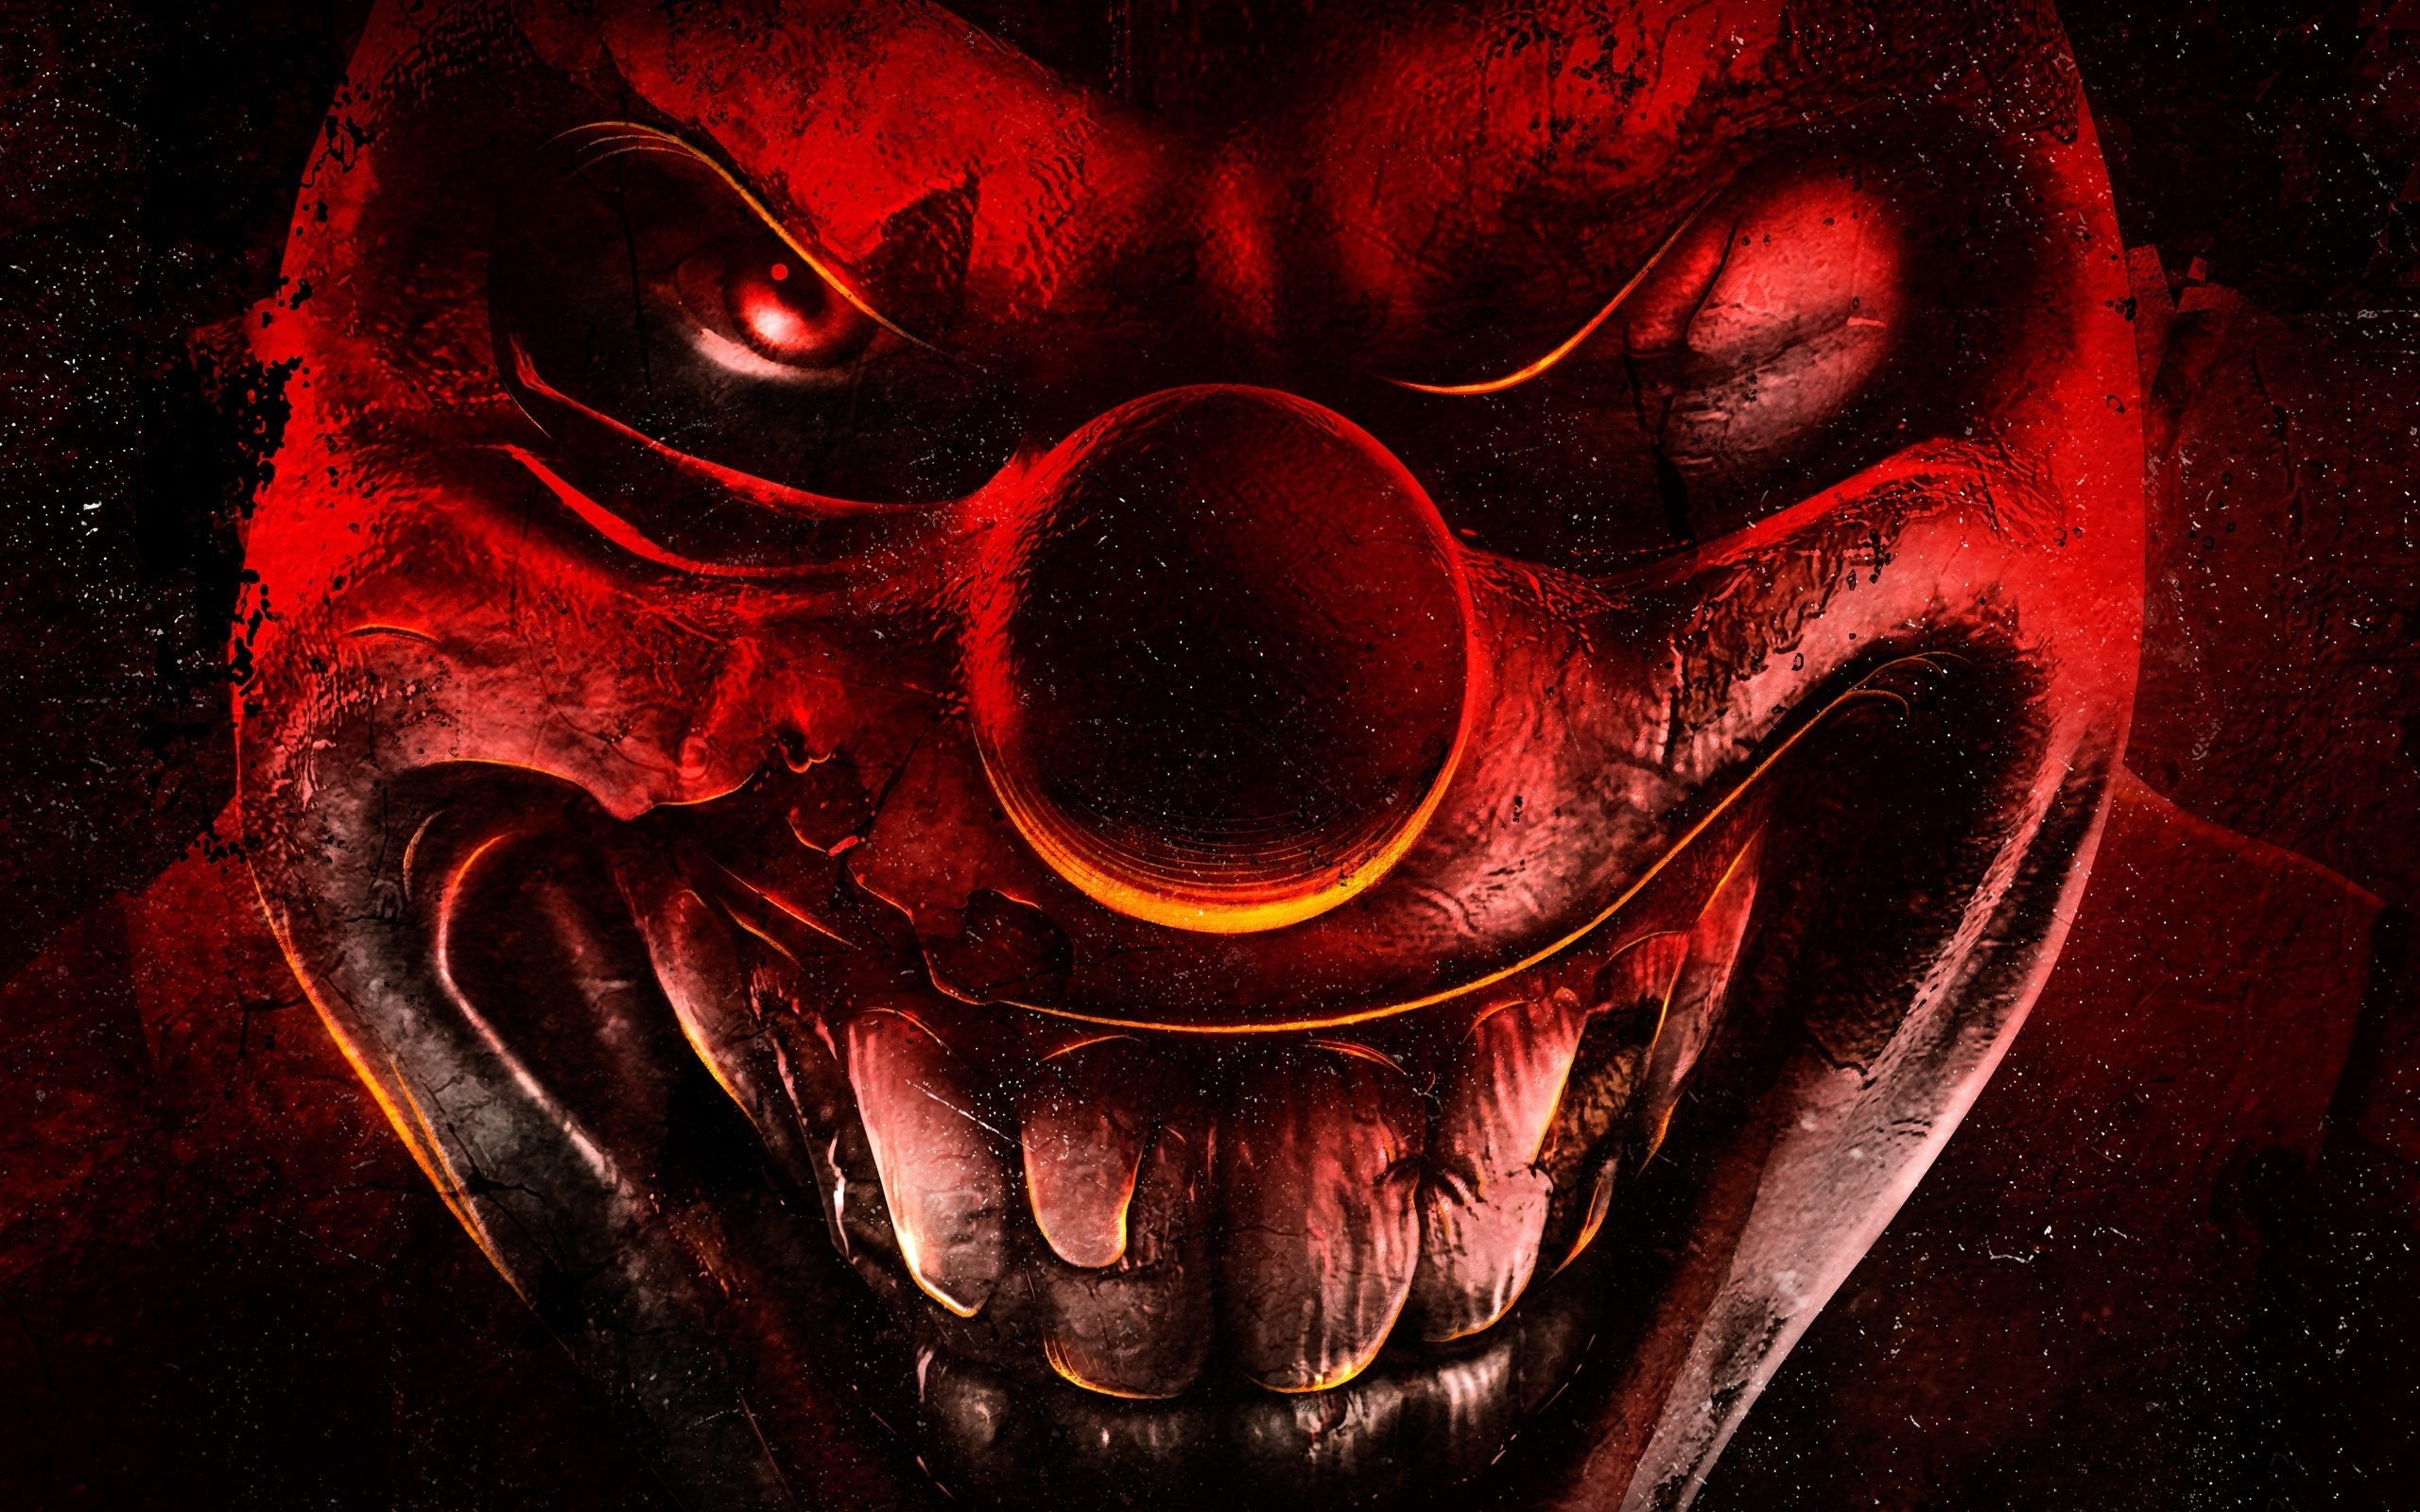 Evil High Quality Background on Wallpapers Vista